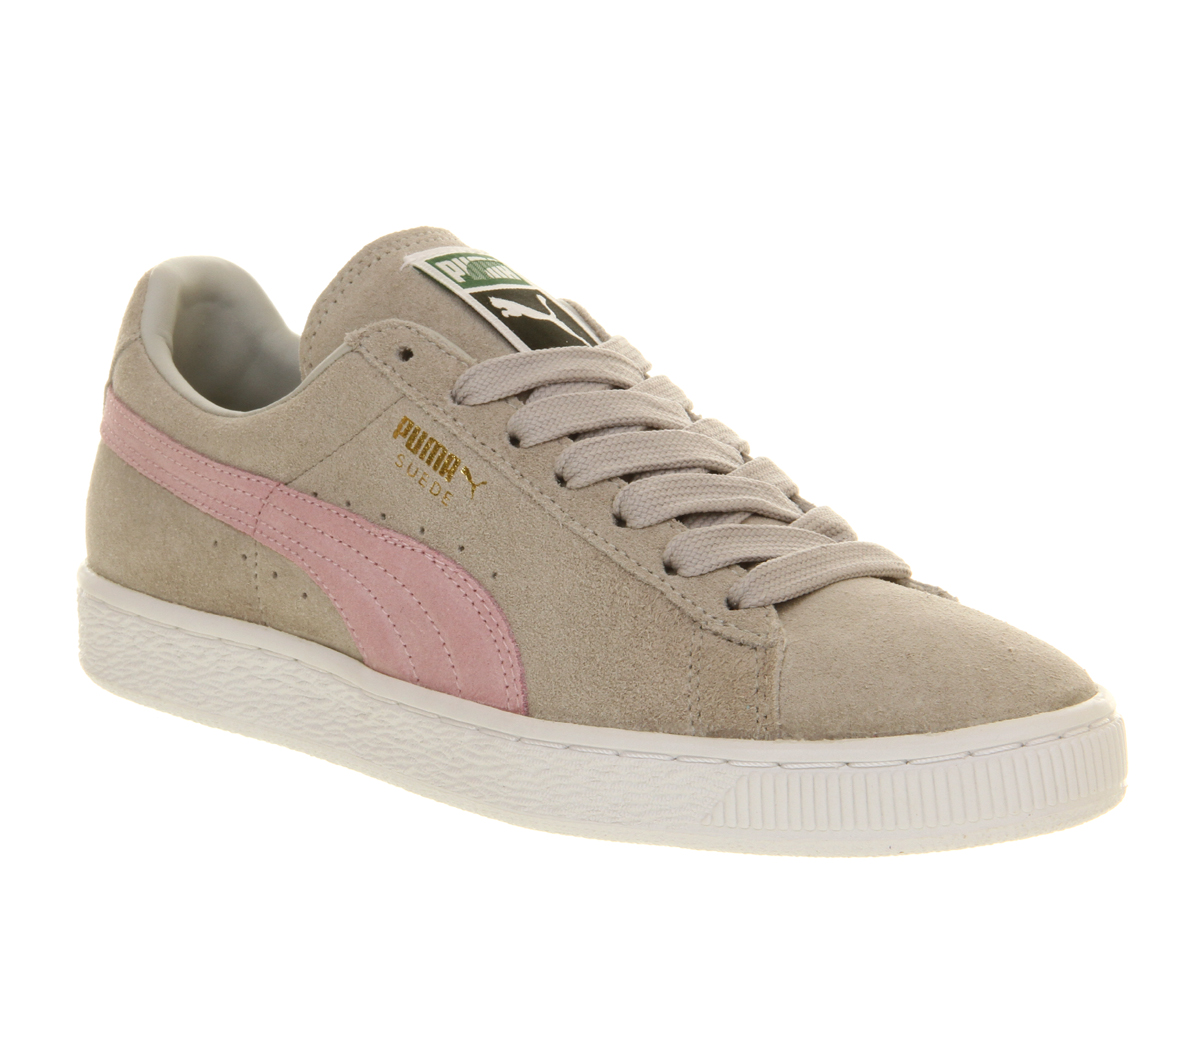 Puma-Suede-Classic-Grey-Violet-Pink-Trainers-Shoes